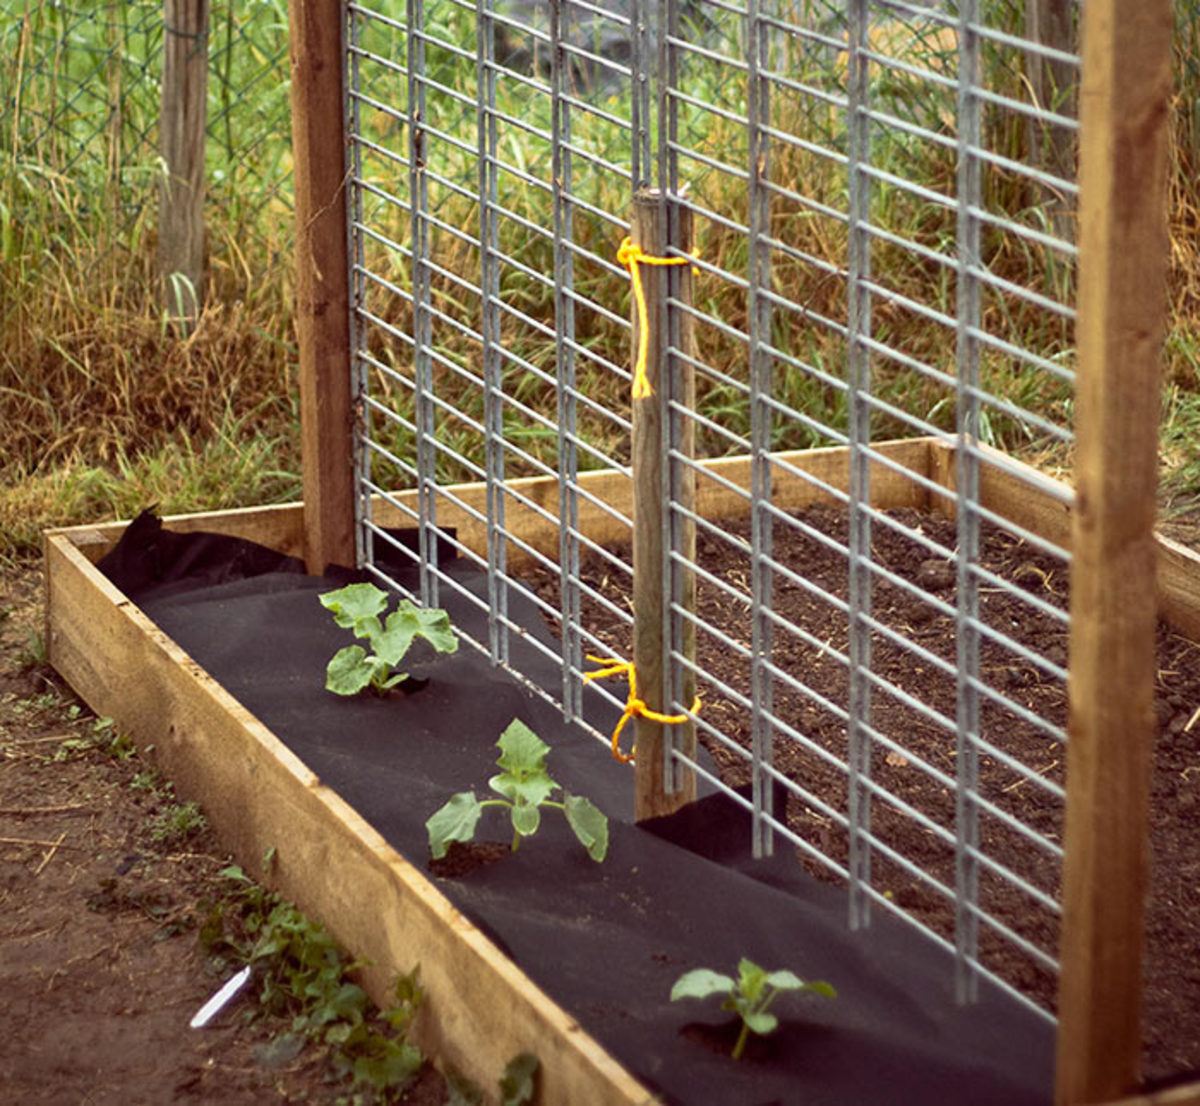 A sturdy trellis stands ready to support these cucumber plants as they develop. It's much easier to install supports while plants are small, than to wait until growth becomes large and unruly.